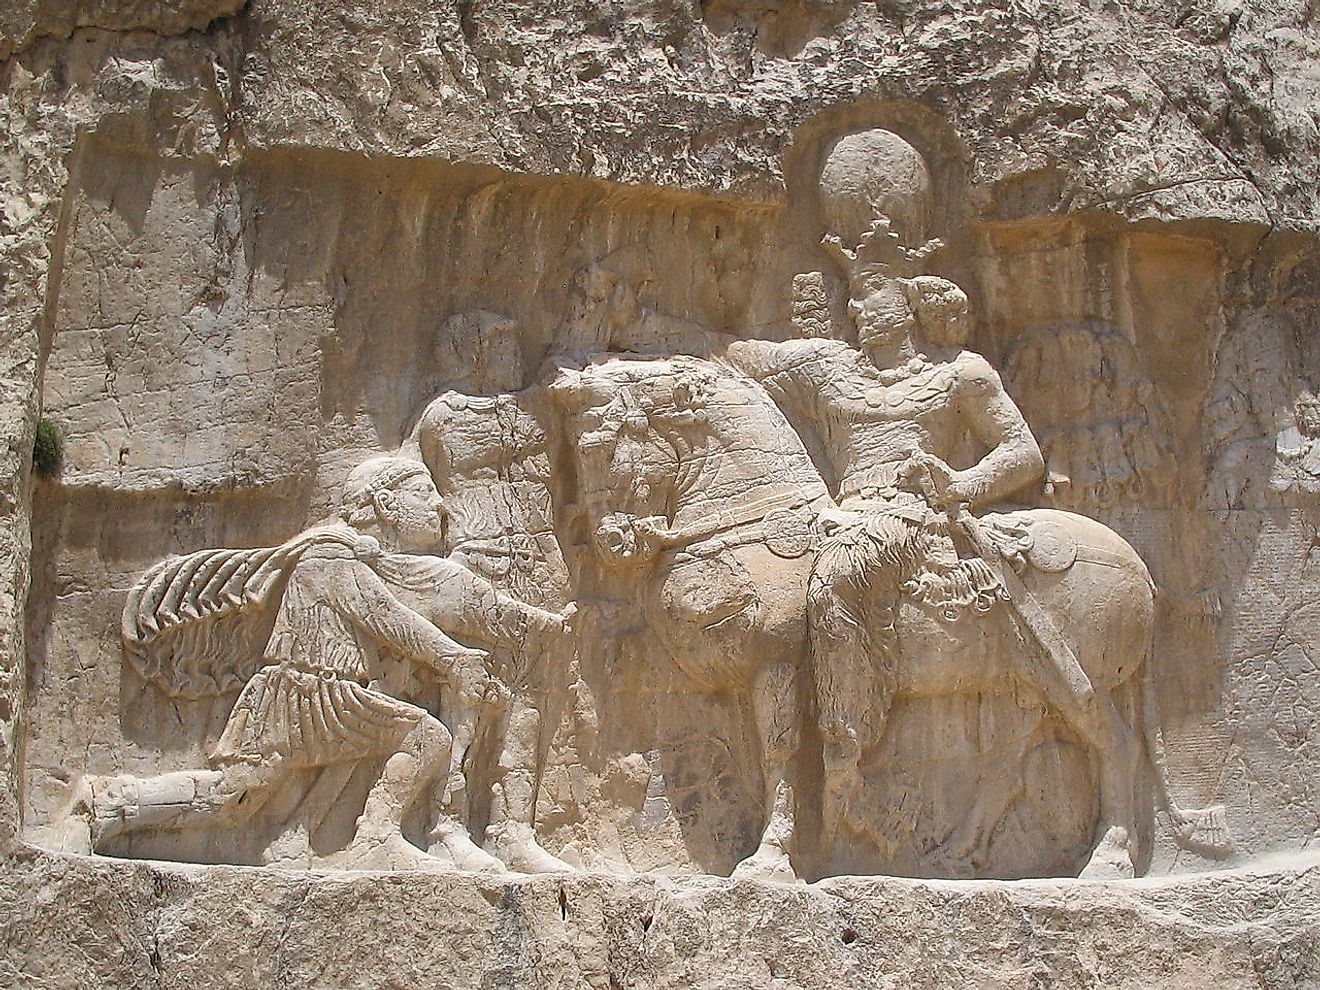 A rock-face relief at Naqsh-e Rostam, depicting the triumph of Shapur I over the Roman Emperor Valerian and Philip the Arab. Image credit: Fabienkhan/Public domain